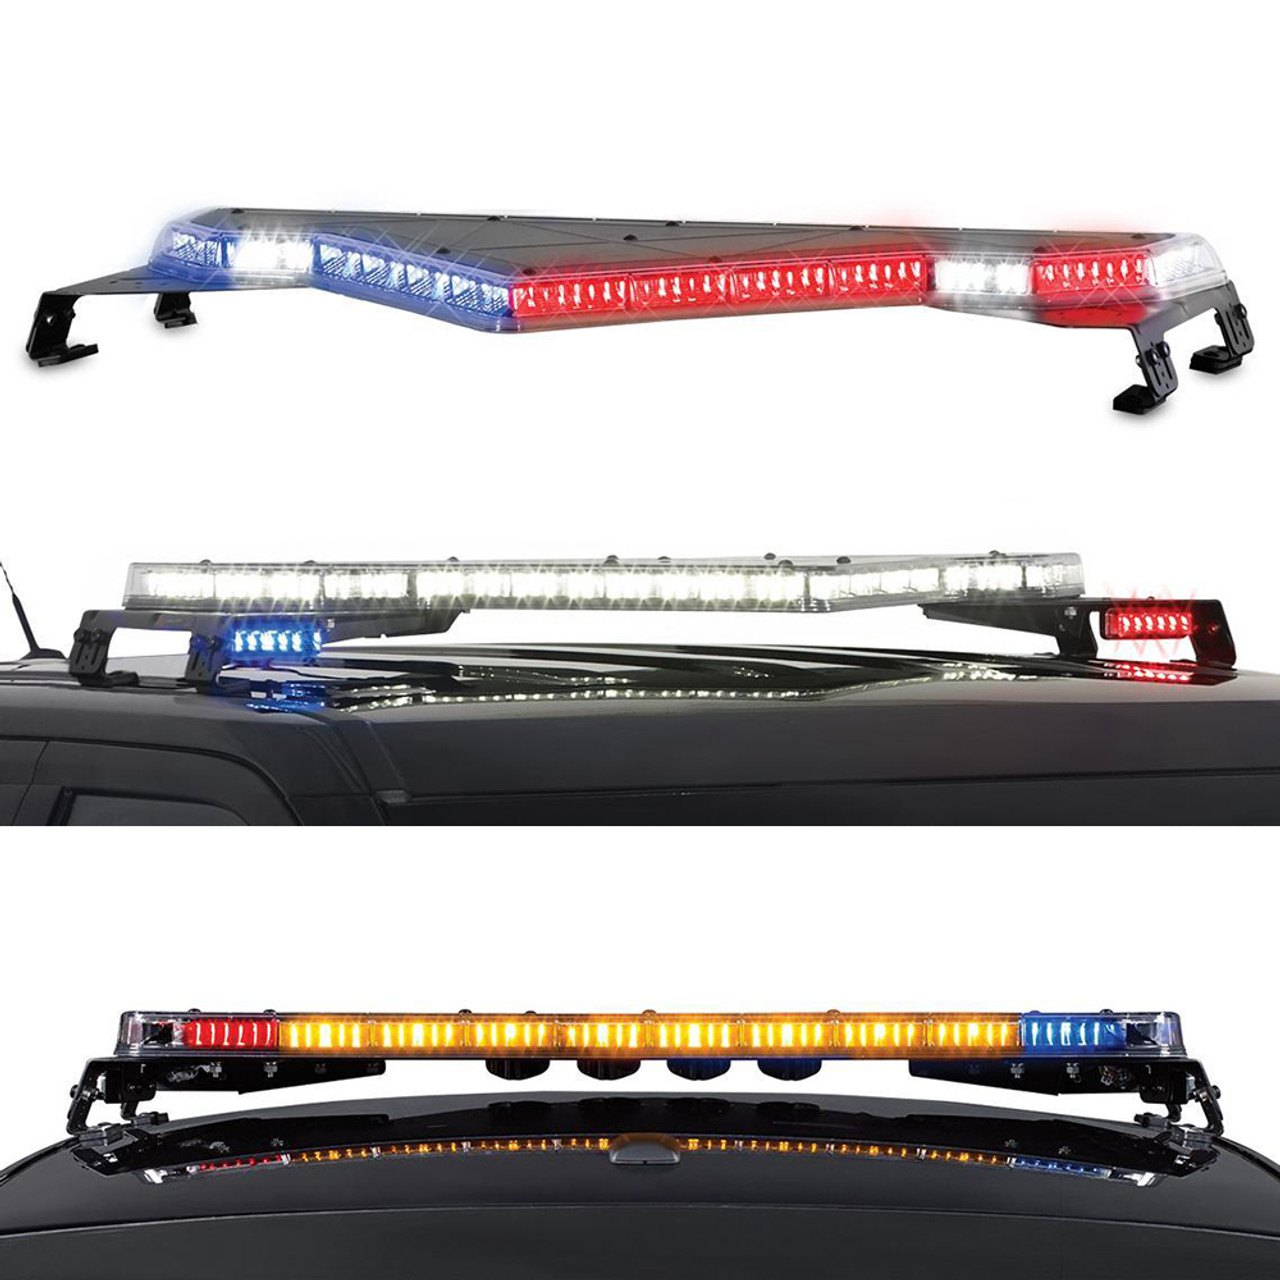 Federal Signal Valor LED Light Bar Dual Color with Full Flood and Traffic Advisor, 51 or 44 inch